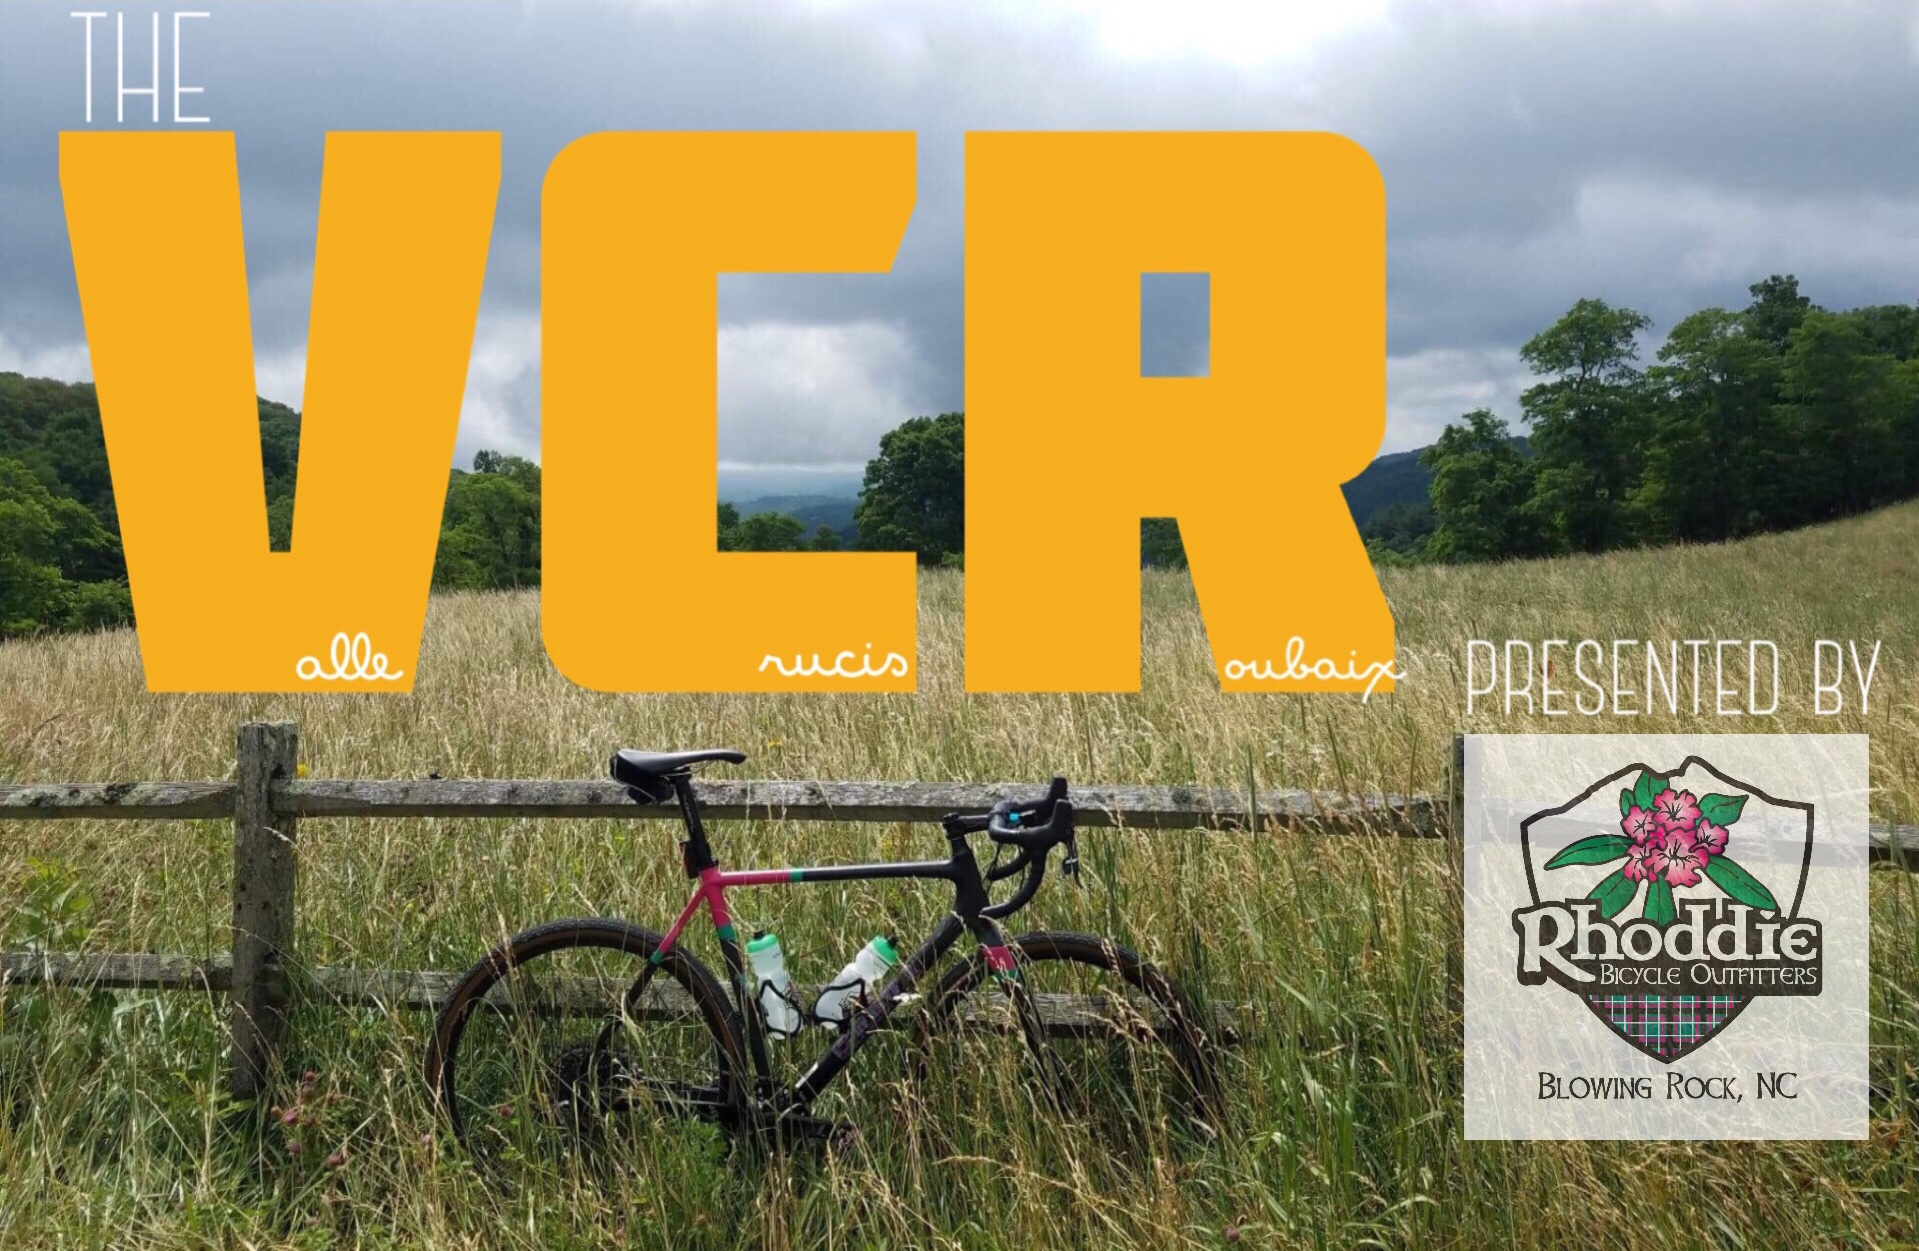 We will roll at 8am on Saturday, July 7th from the Valle Crucis Community Park.  Route is 42 miles with 4200ft of climbing AND over 50% gravel:  https://ridewithgps.com/routes/27906560   - Gravel bikes or road bikes with at least 25mm tires are recommended. - There will not be places alon u oute to replenish water or foo o pack accordingly. - Average pace will be about 14-15 mph.  - iders are expected to know route, have it uploaded to gps or have printed cue sheet.  - Ride will regroup a fe imes after extended climbing. - Pack a cooler with lunch, your bathing suit, inner tube, towel, fly rod and sunscreen for a fun post-ride time!  Please join us if you can, and if you need a gravel bike to ride, give us a shout and book one of our rentals!